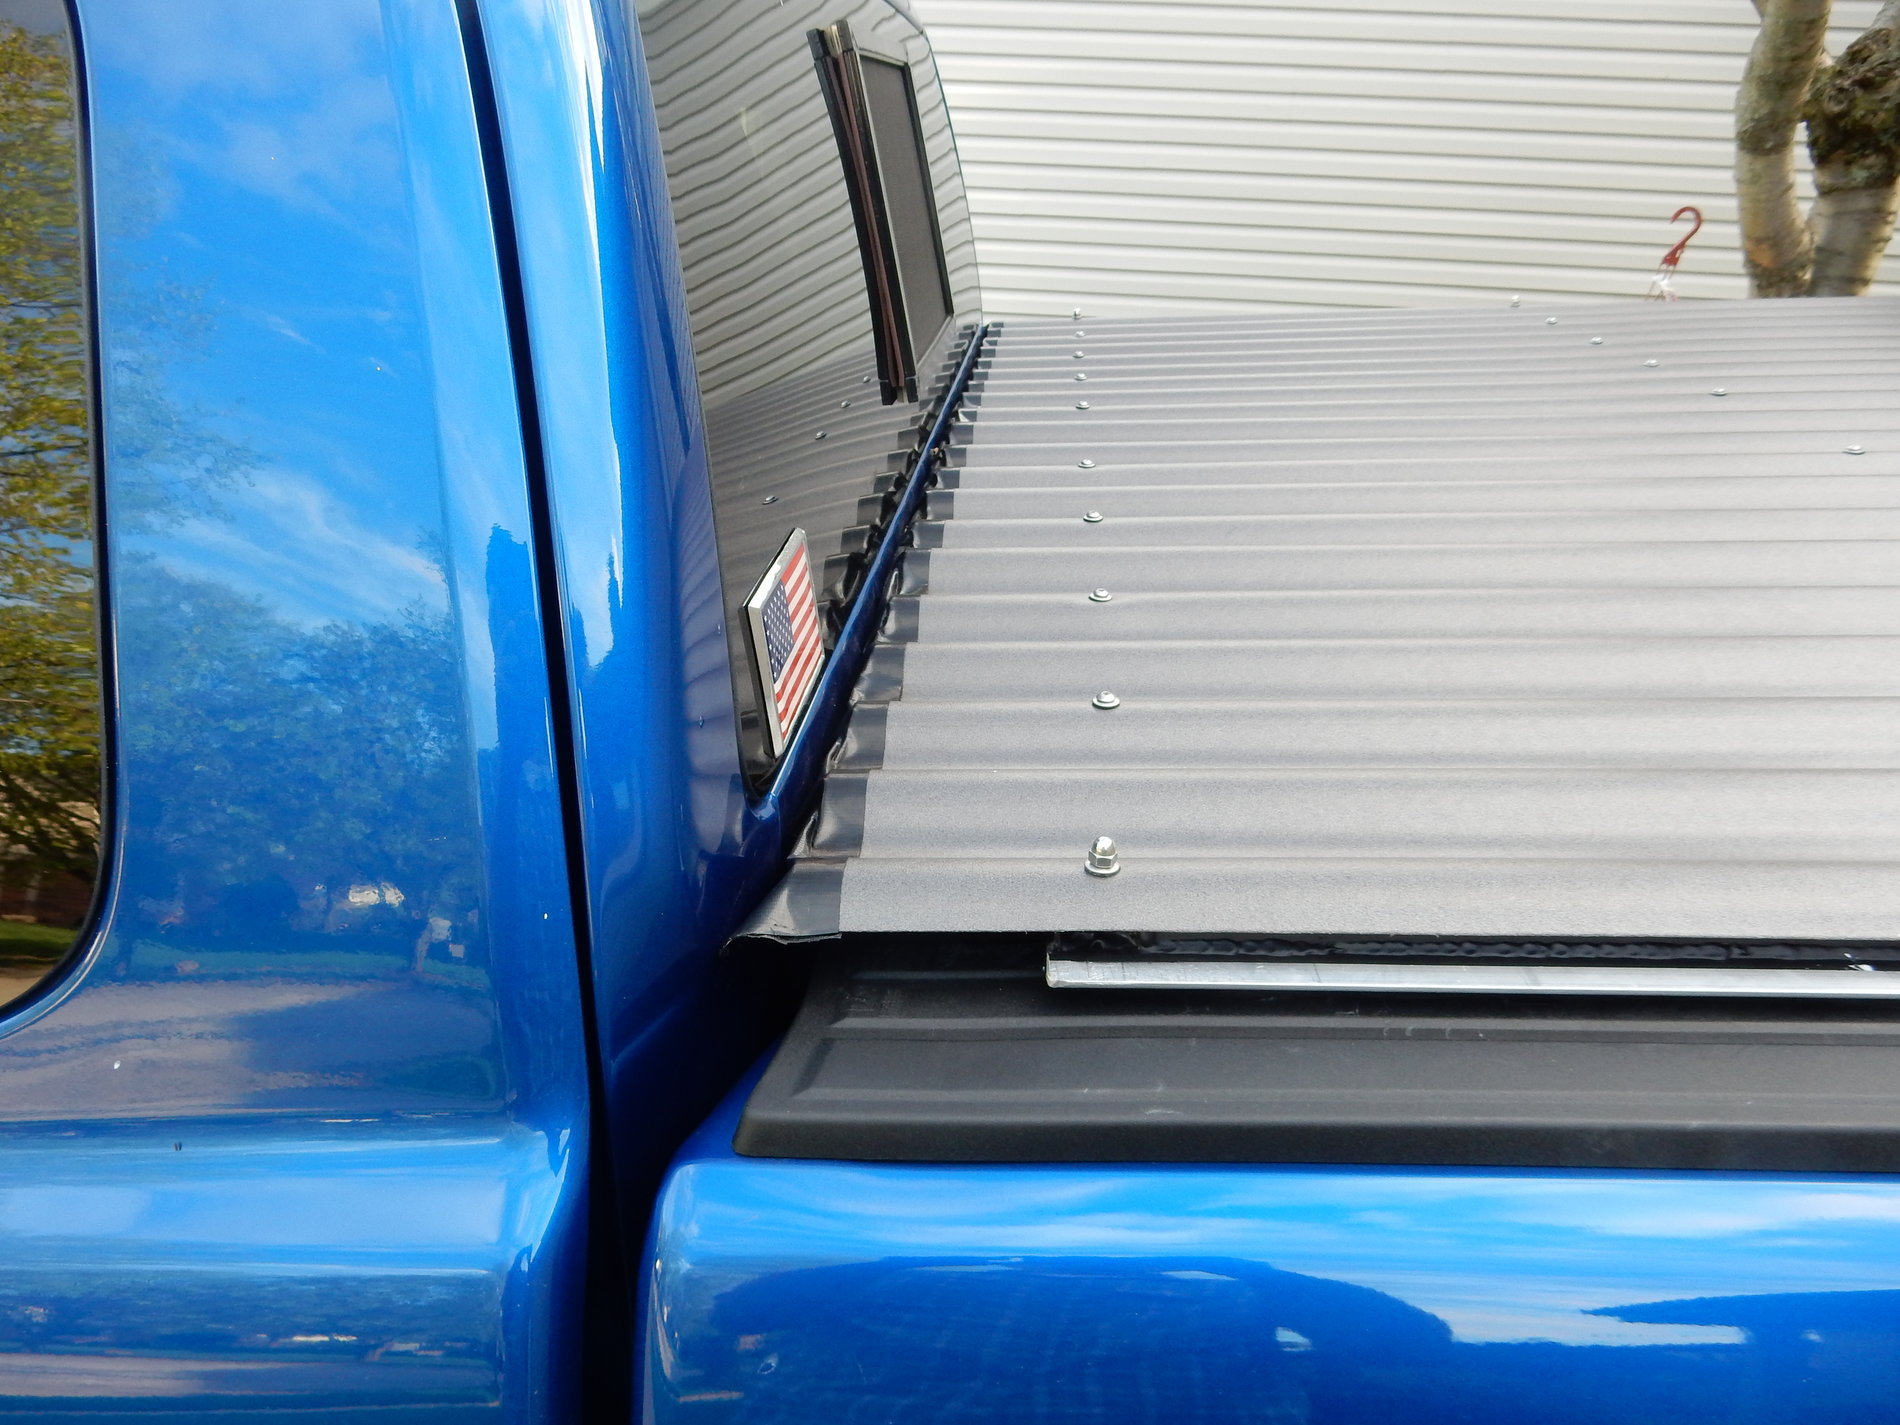 Diy True Authentic Hillbilly Iii Incline All Metal Plastic Truck Bed Cover Tonneau For The 2019 2020 Ford Ranger Page 2 2019 Ford Ranger And Raptor Forum 5th Generation Ranger5g Com